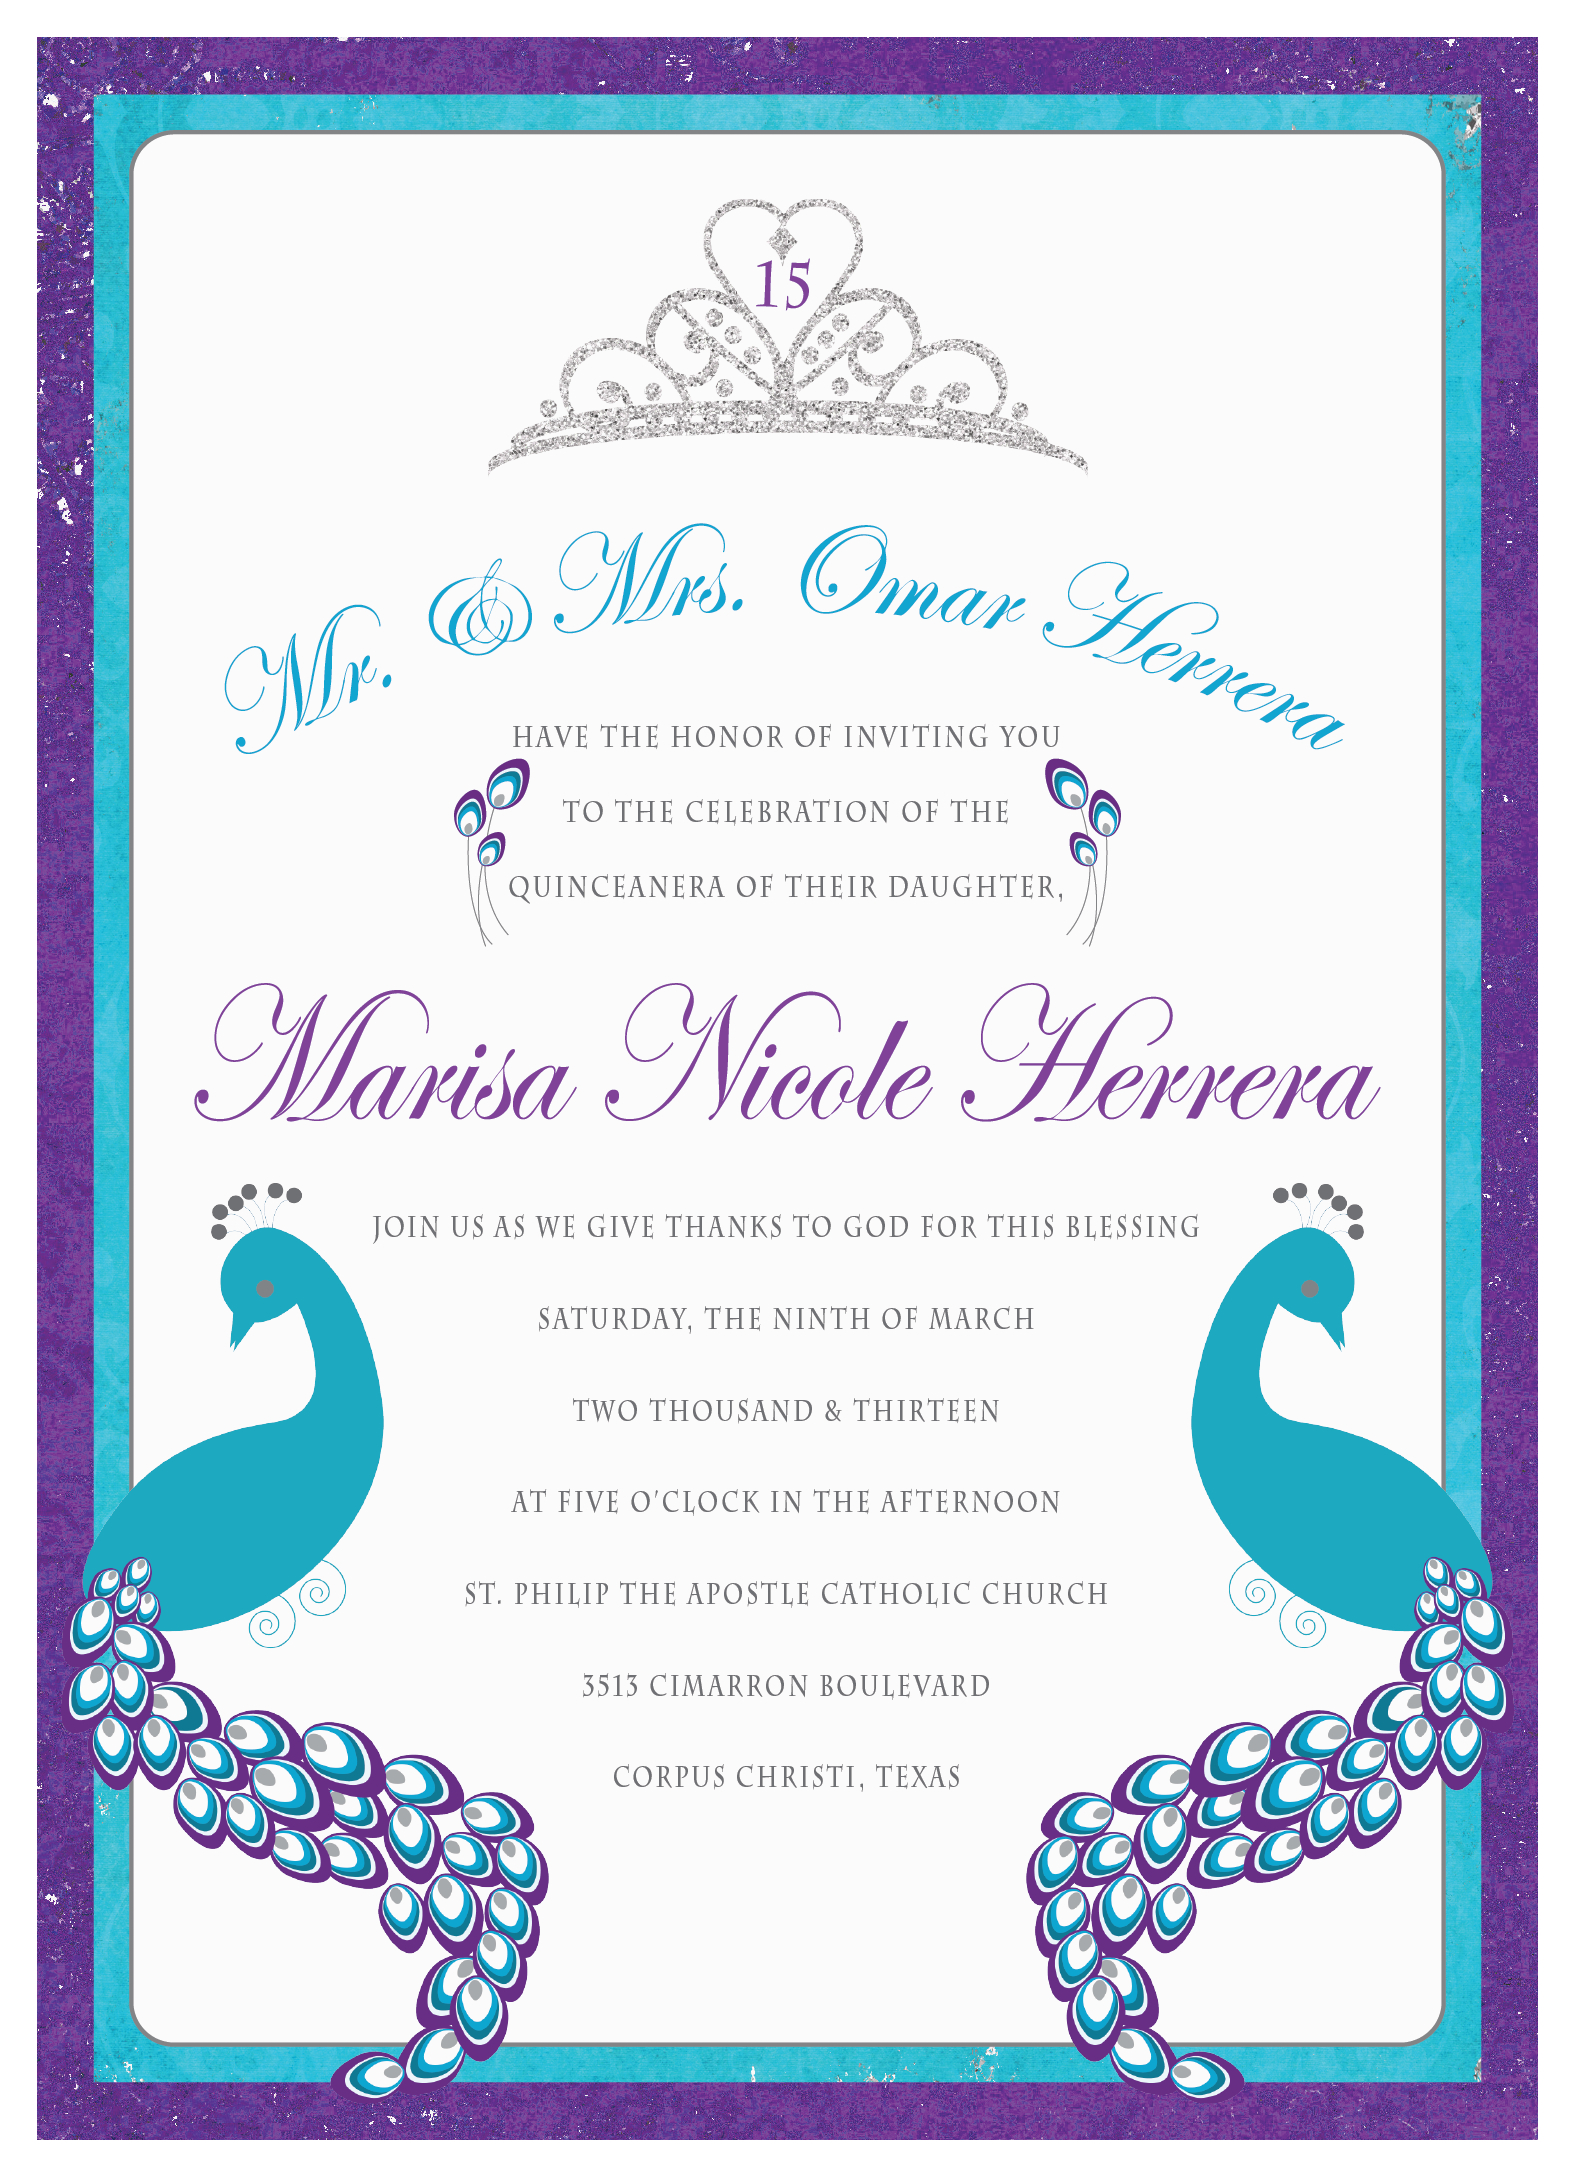 photo about Sweet 16 Birthday Invitations Free Printable called No cost Printable Adorable 16 Birthday Celebration Invites Free of charge